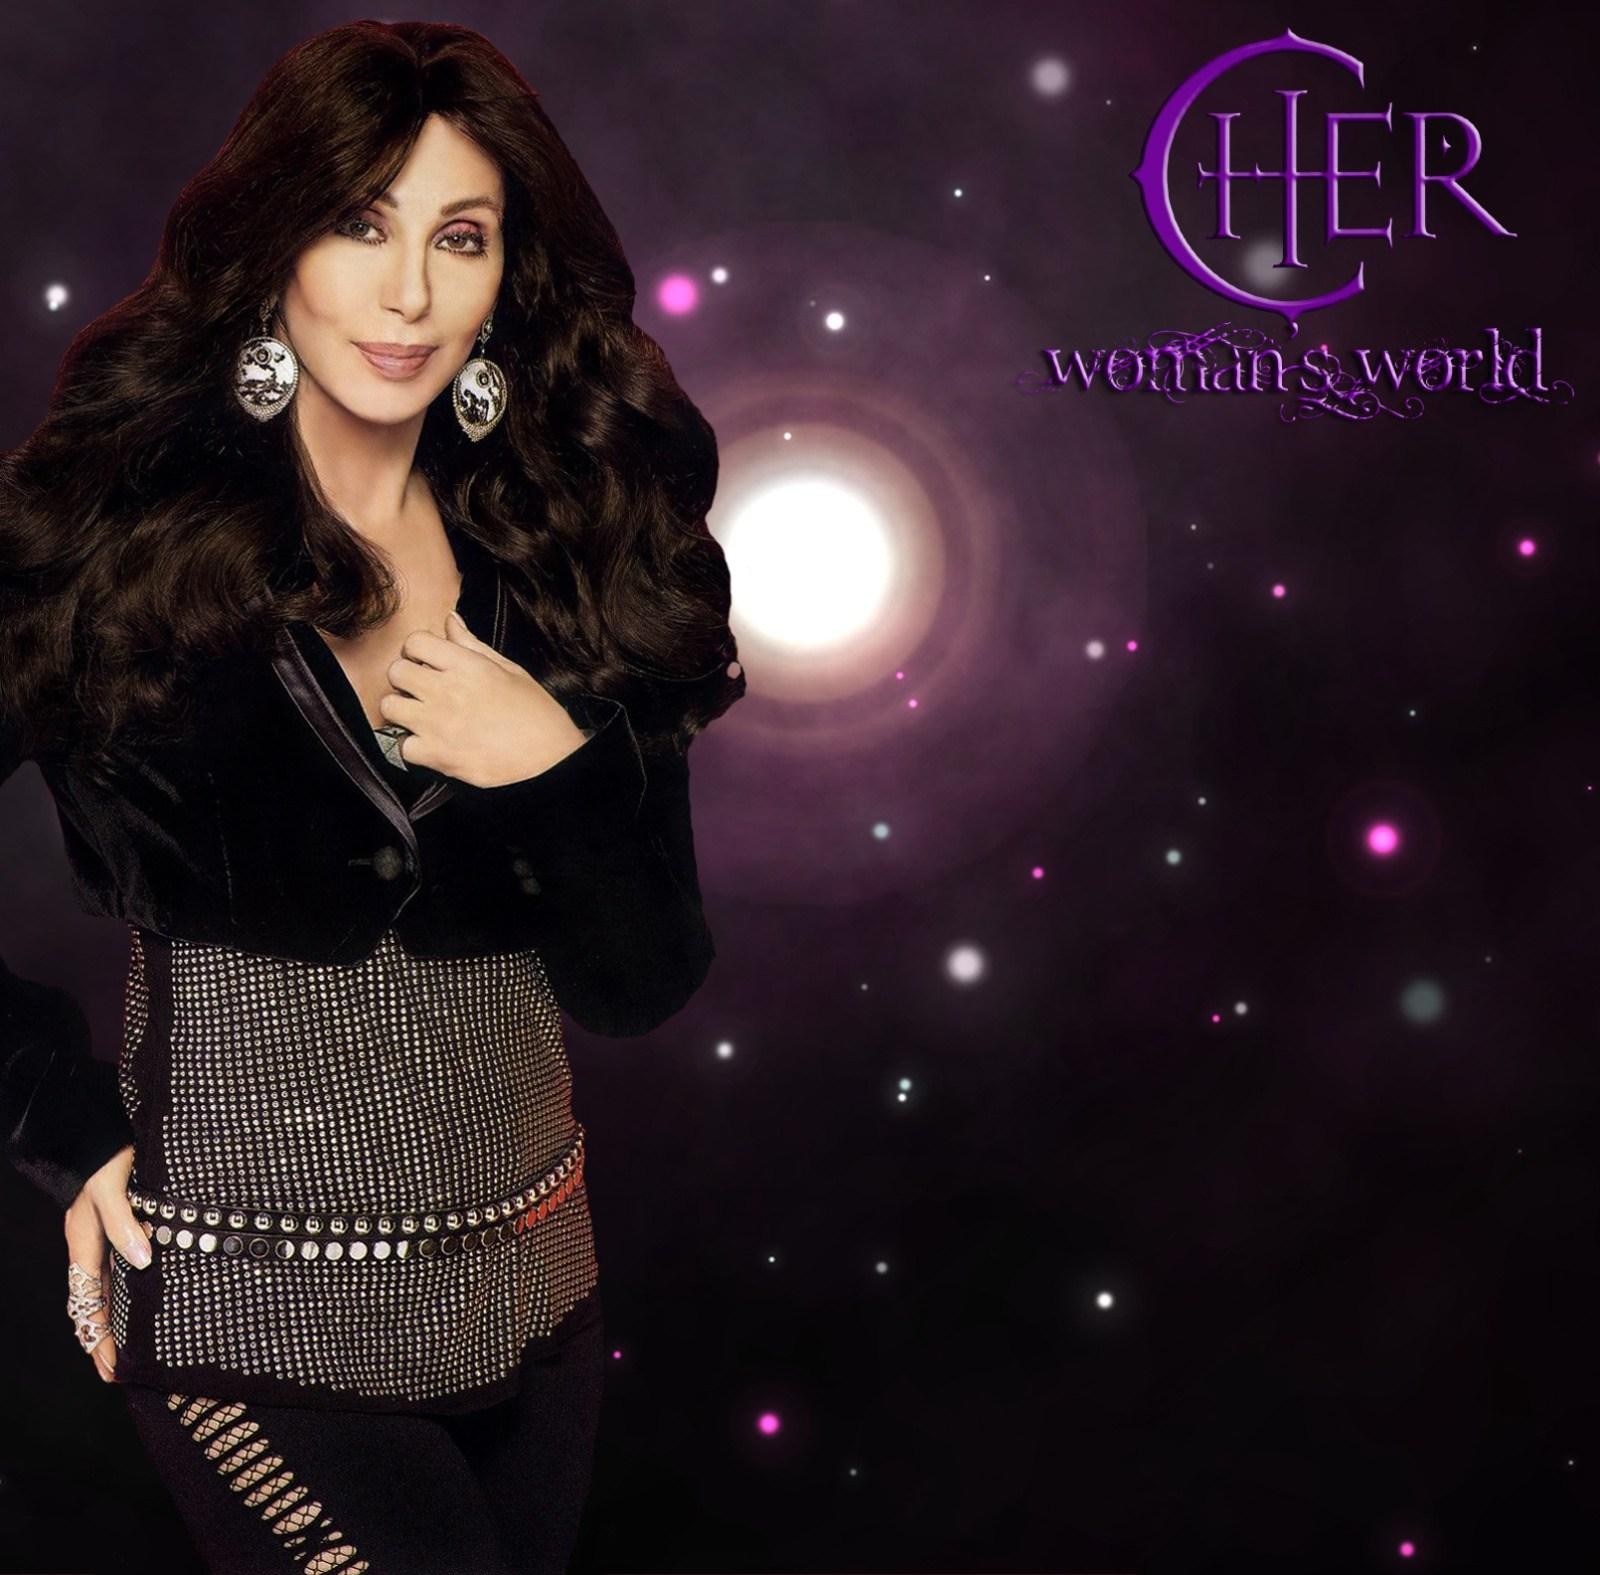 Wallpapers Cher Backgrounds And